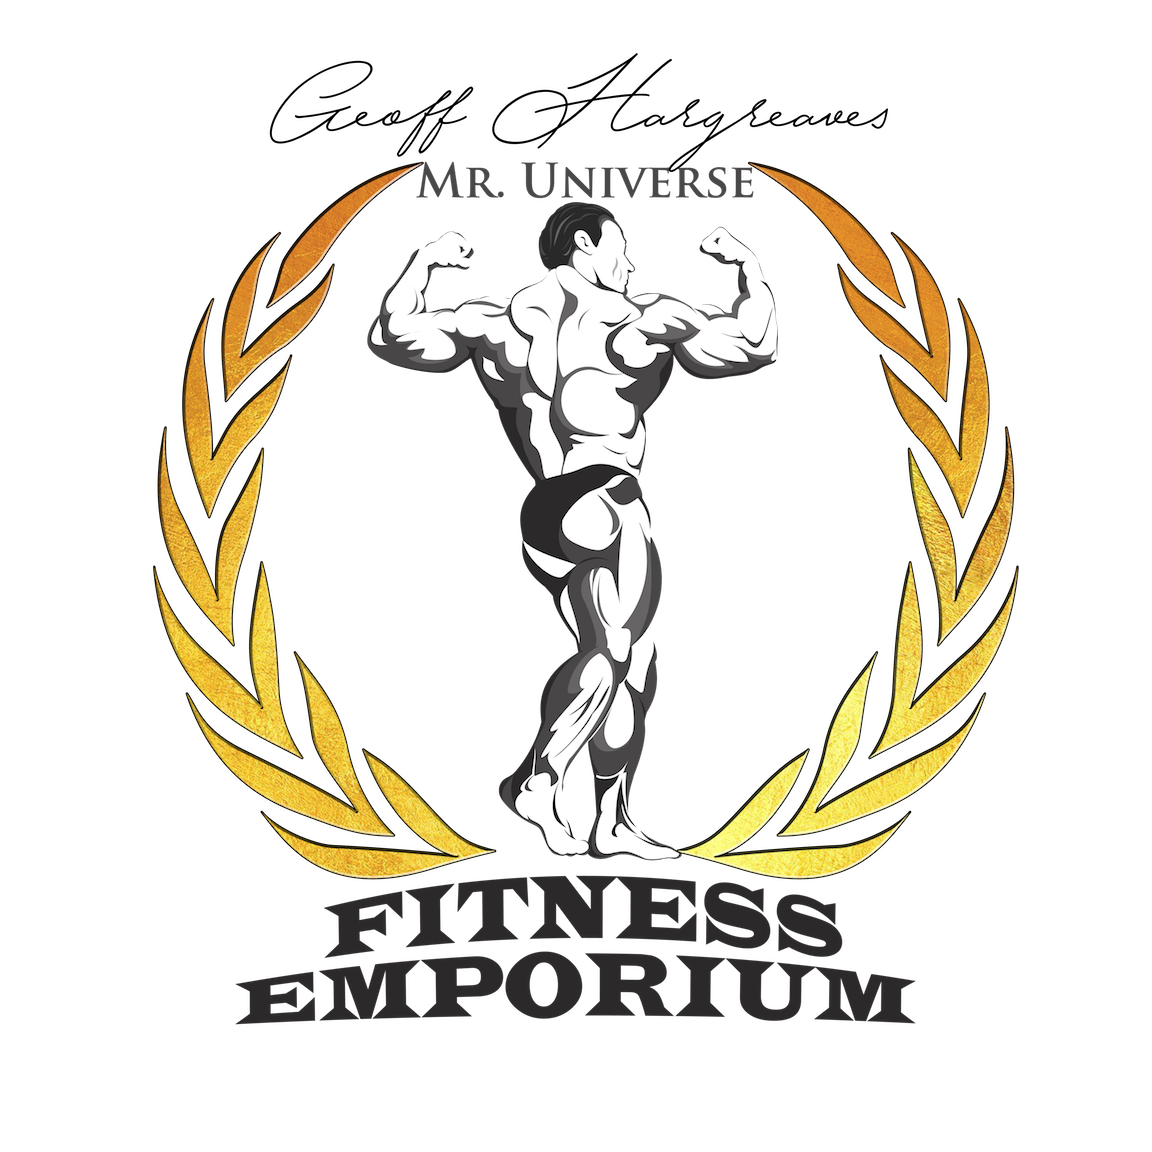 Fitness Emporium FINAL small.png